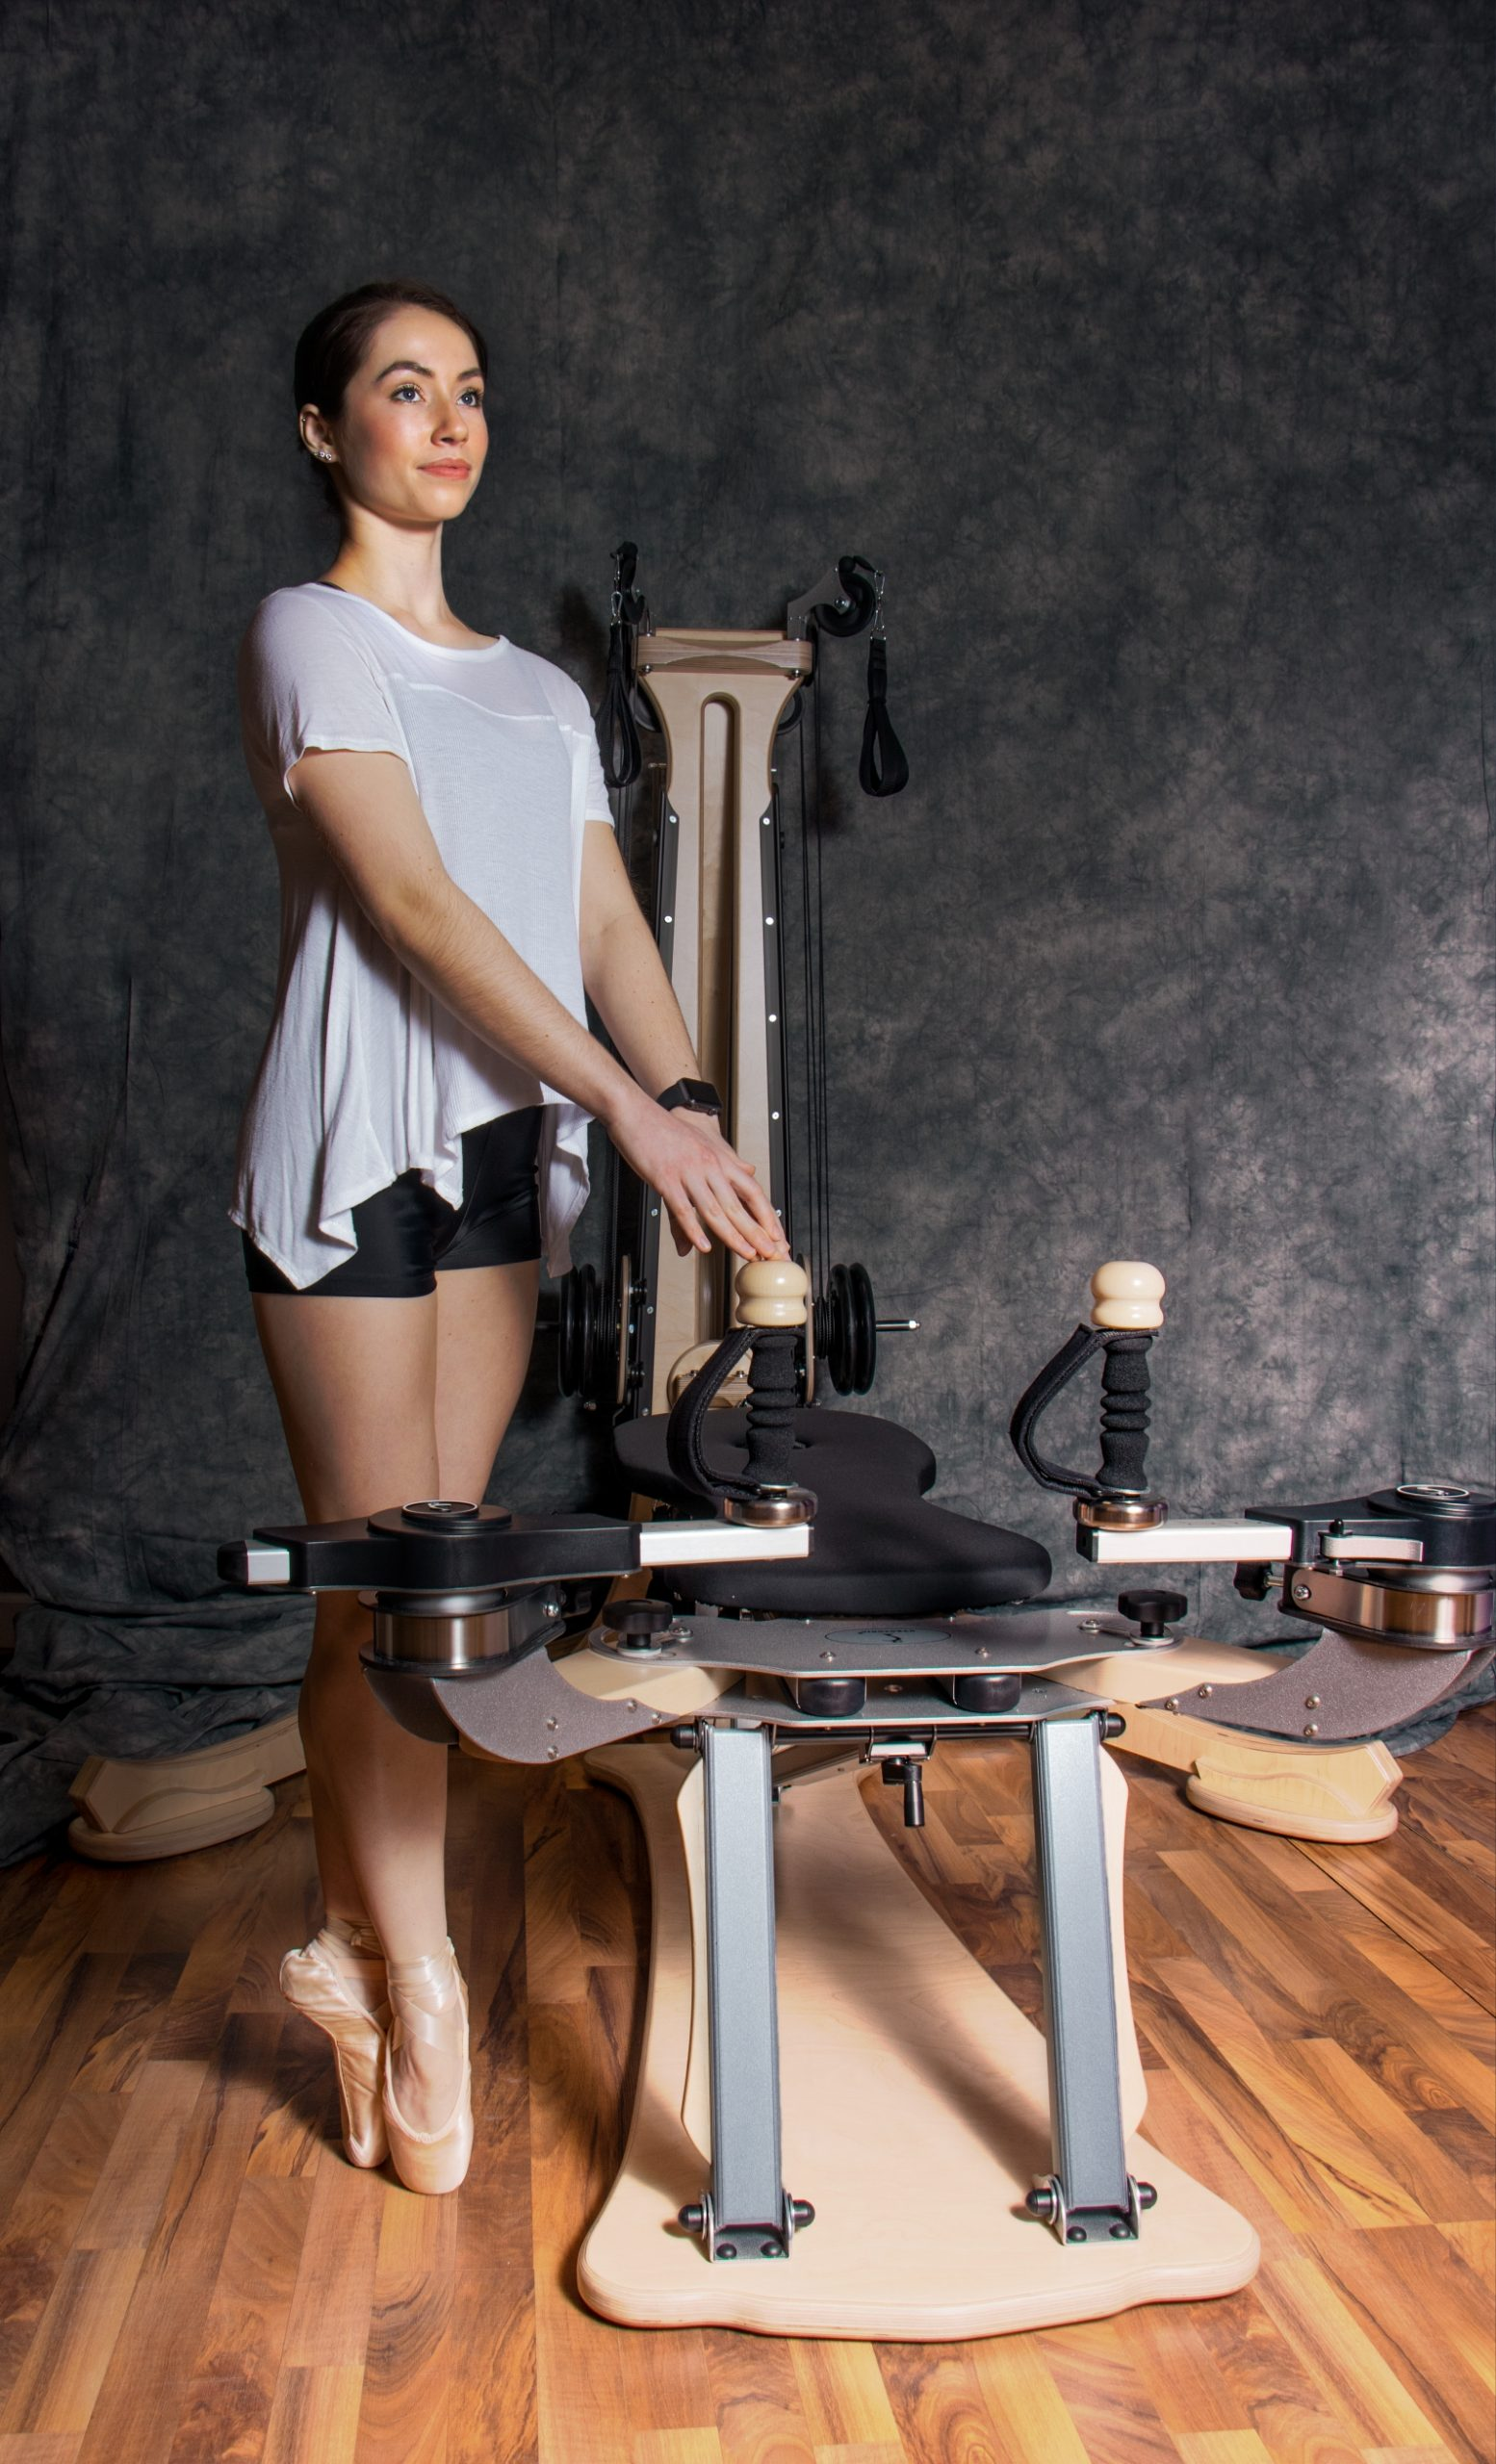 Annie-Ahsmann-gyrotonics-ballet-for-adults-scaled